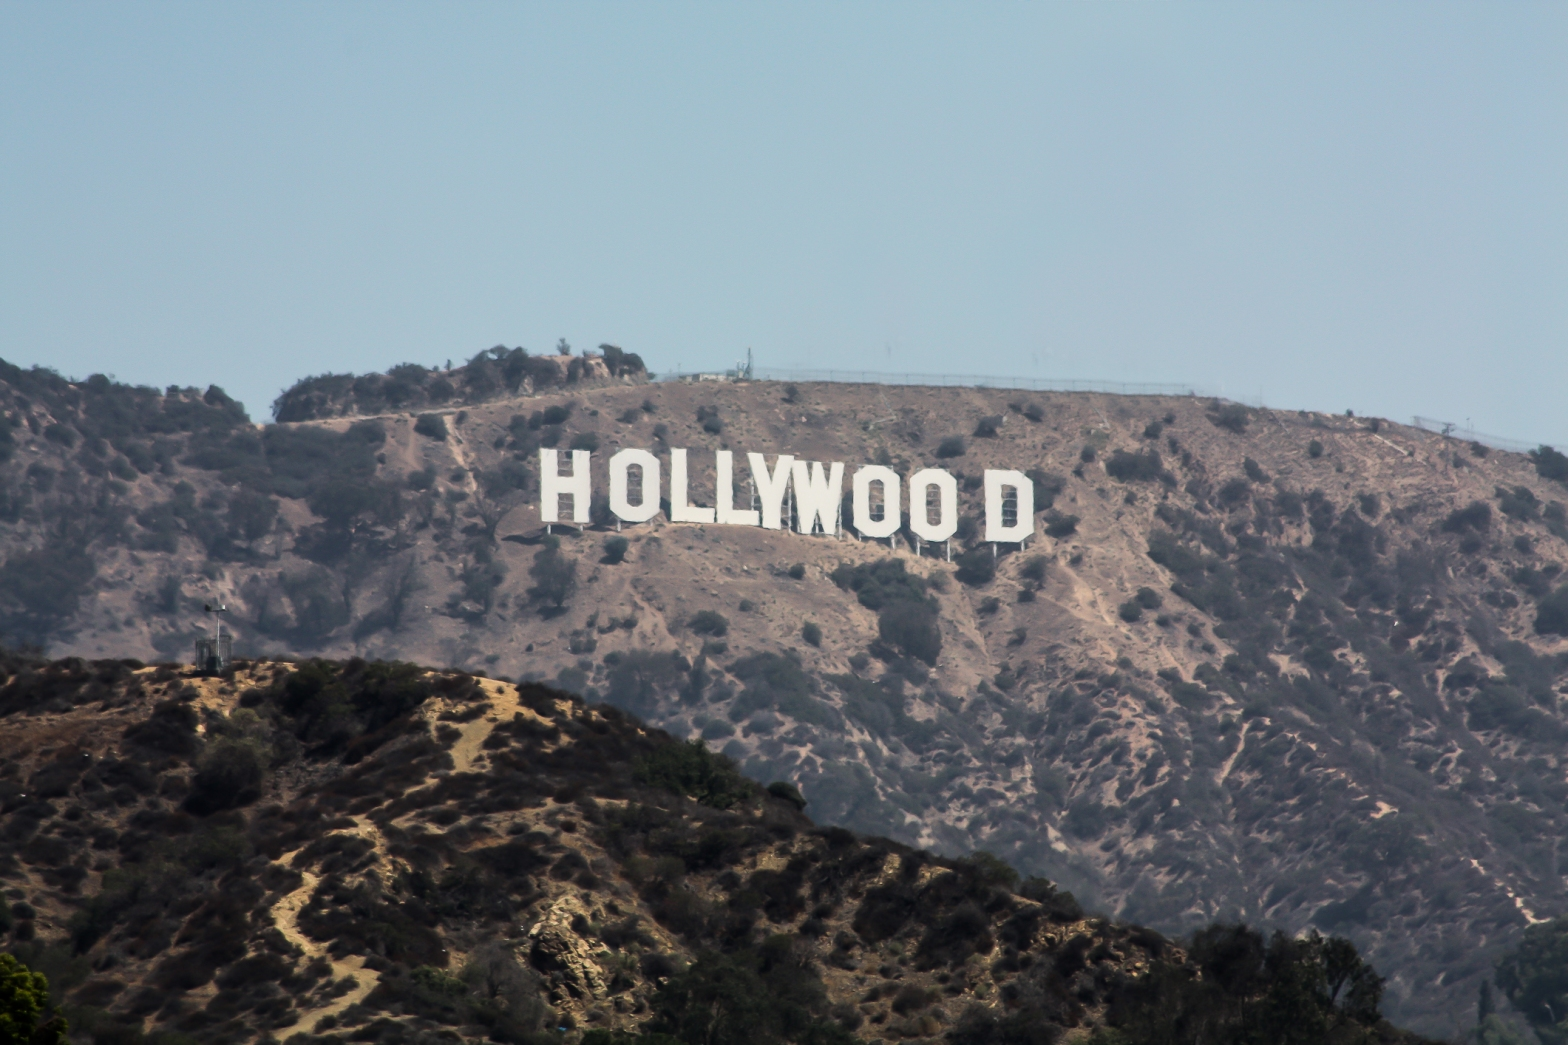 The Hollywood sign - edited